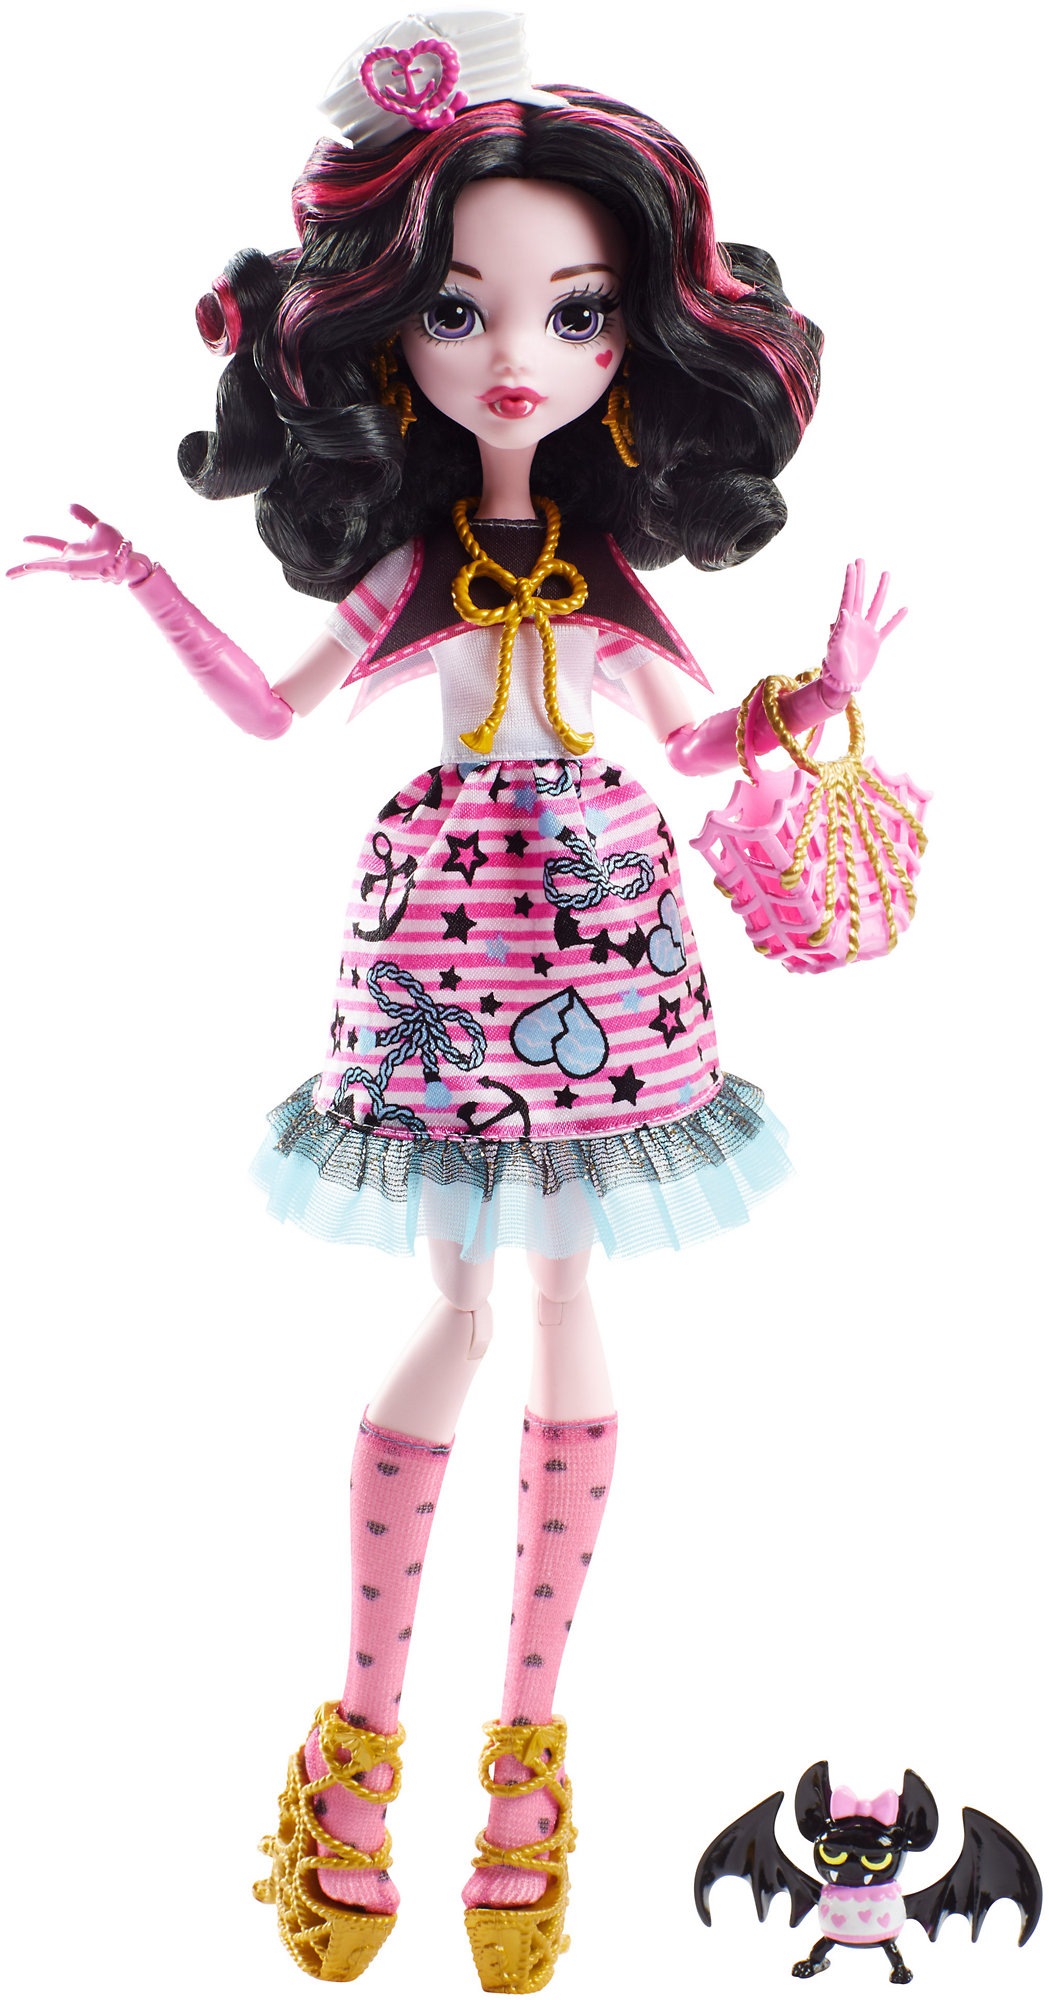 Monster High Shriekwrecked Nautical Ghouls Draculaura Doll by Mattel